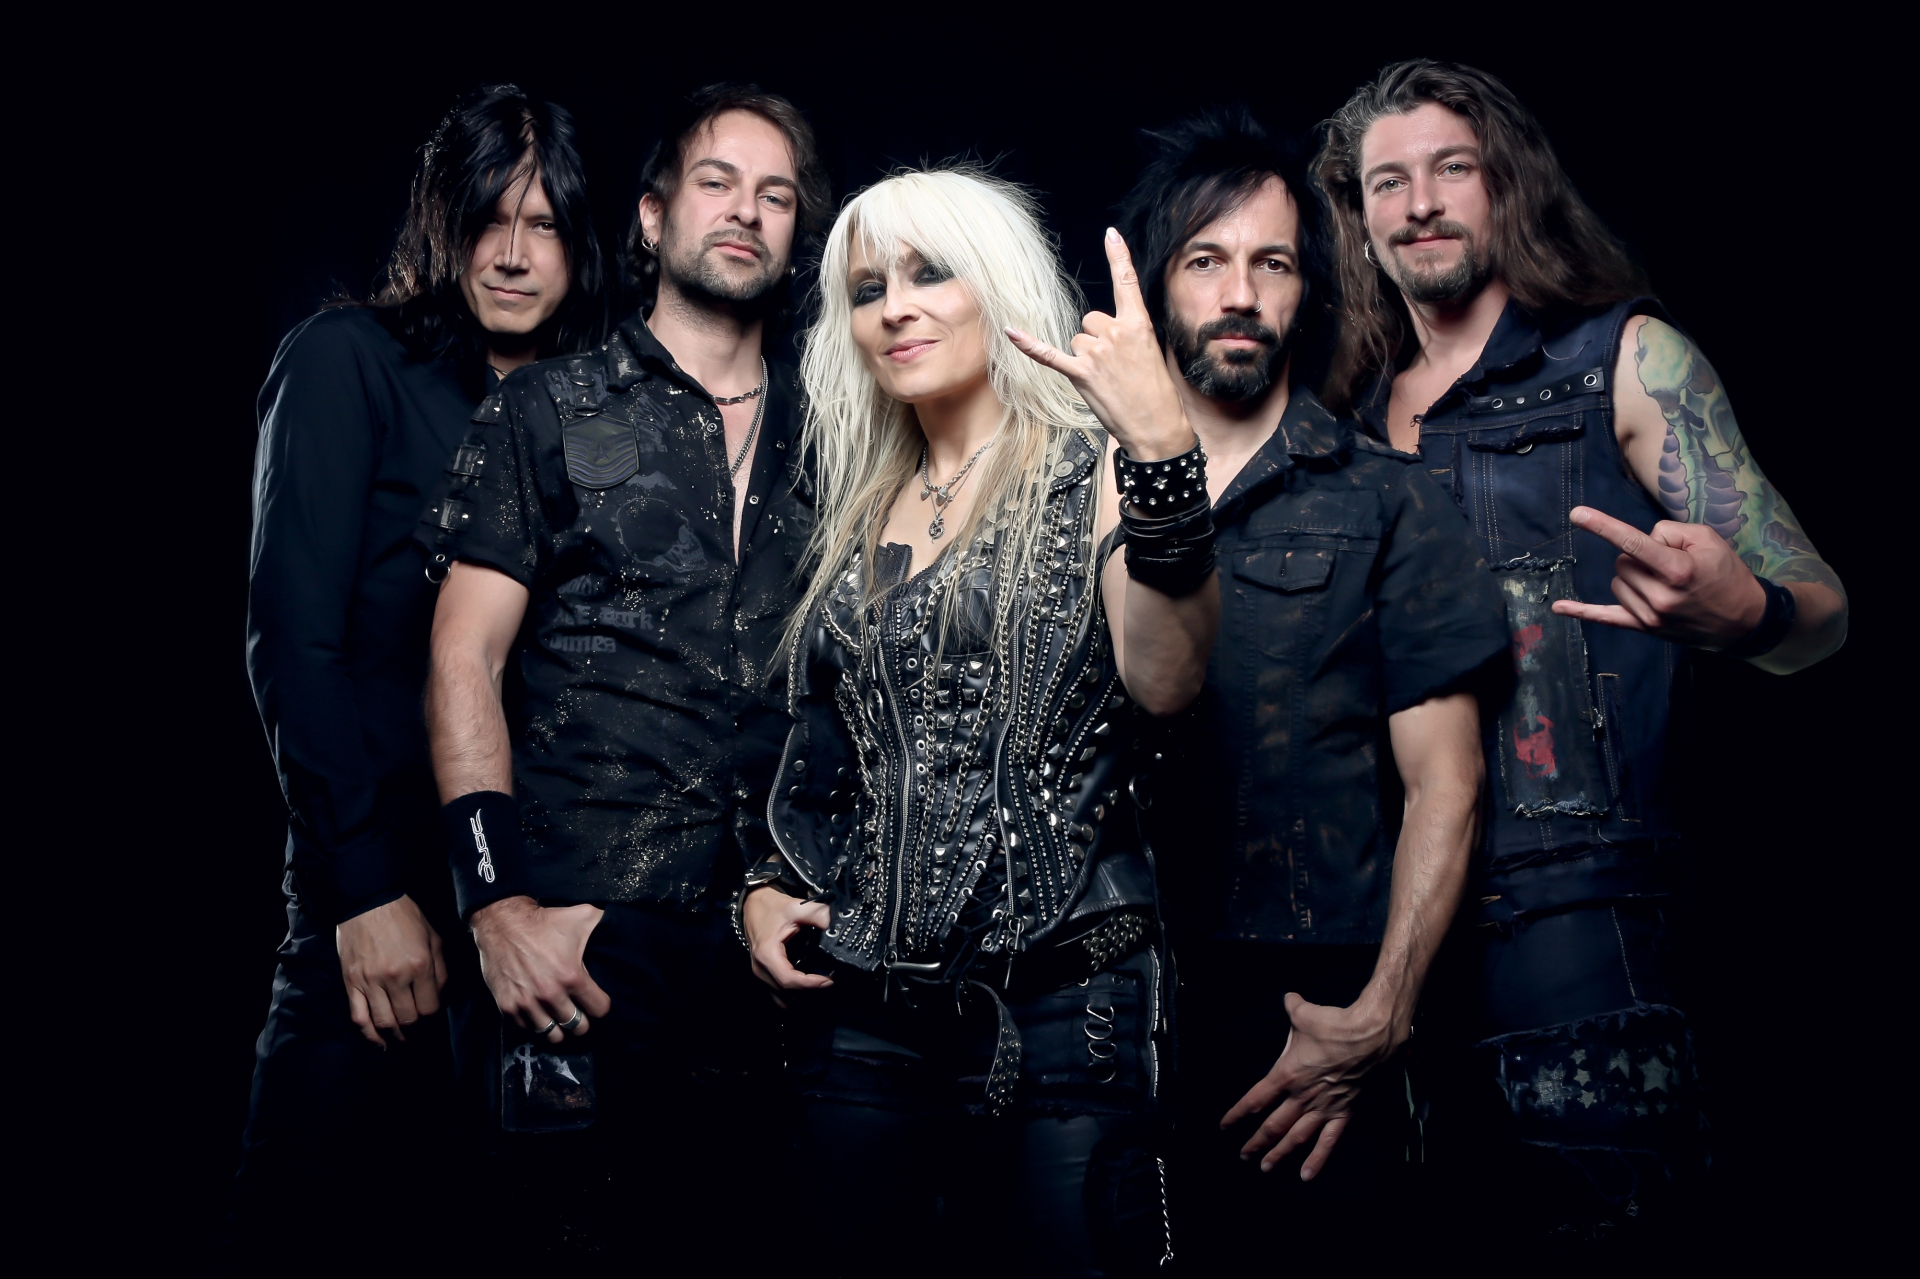 DORO & Band am 28. March 2020 @ Wiener Stadthalle.